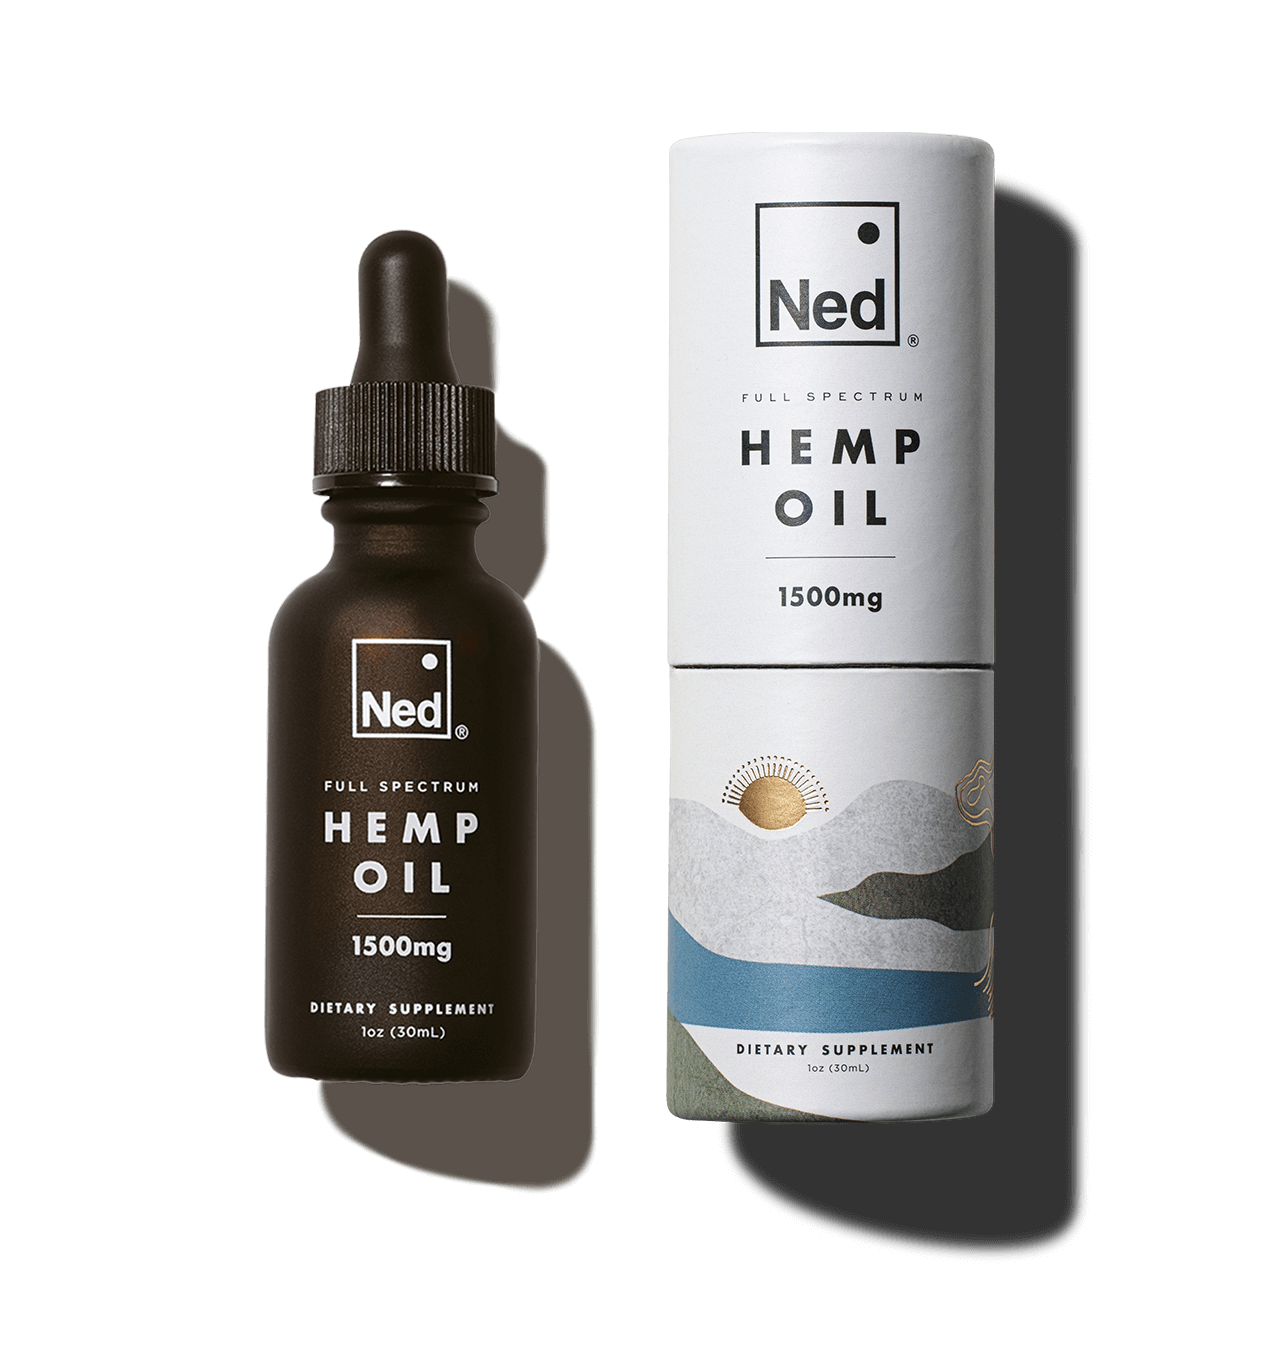 Full Spectrum Hemp Oil